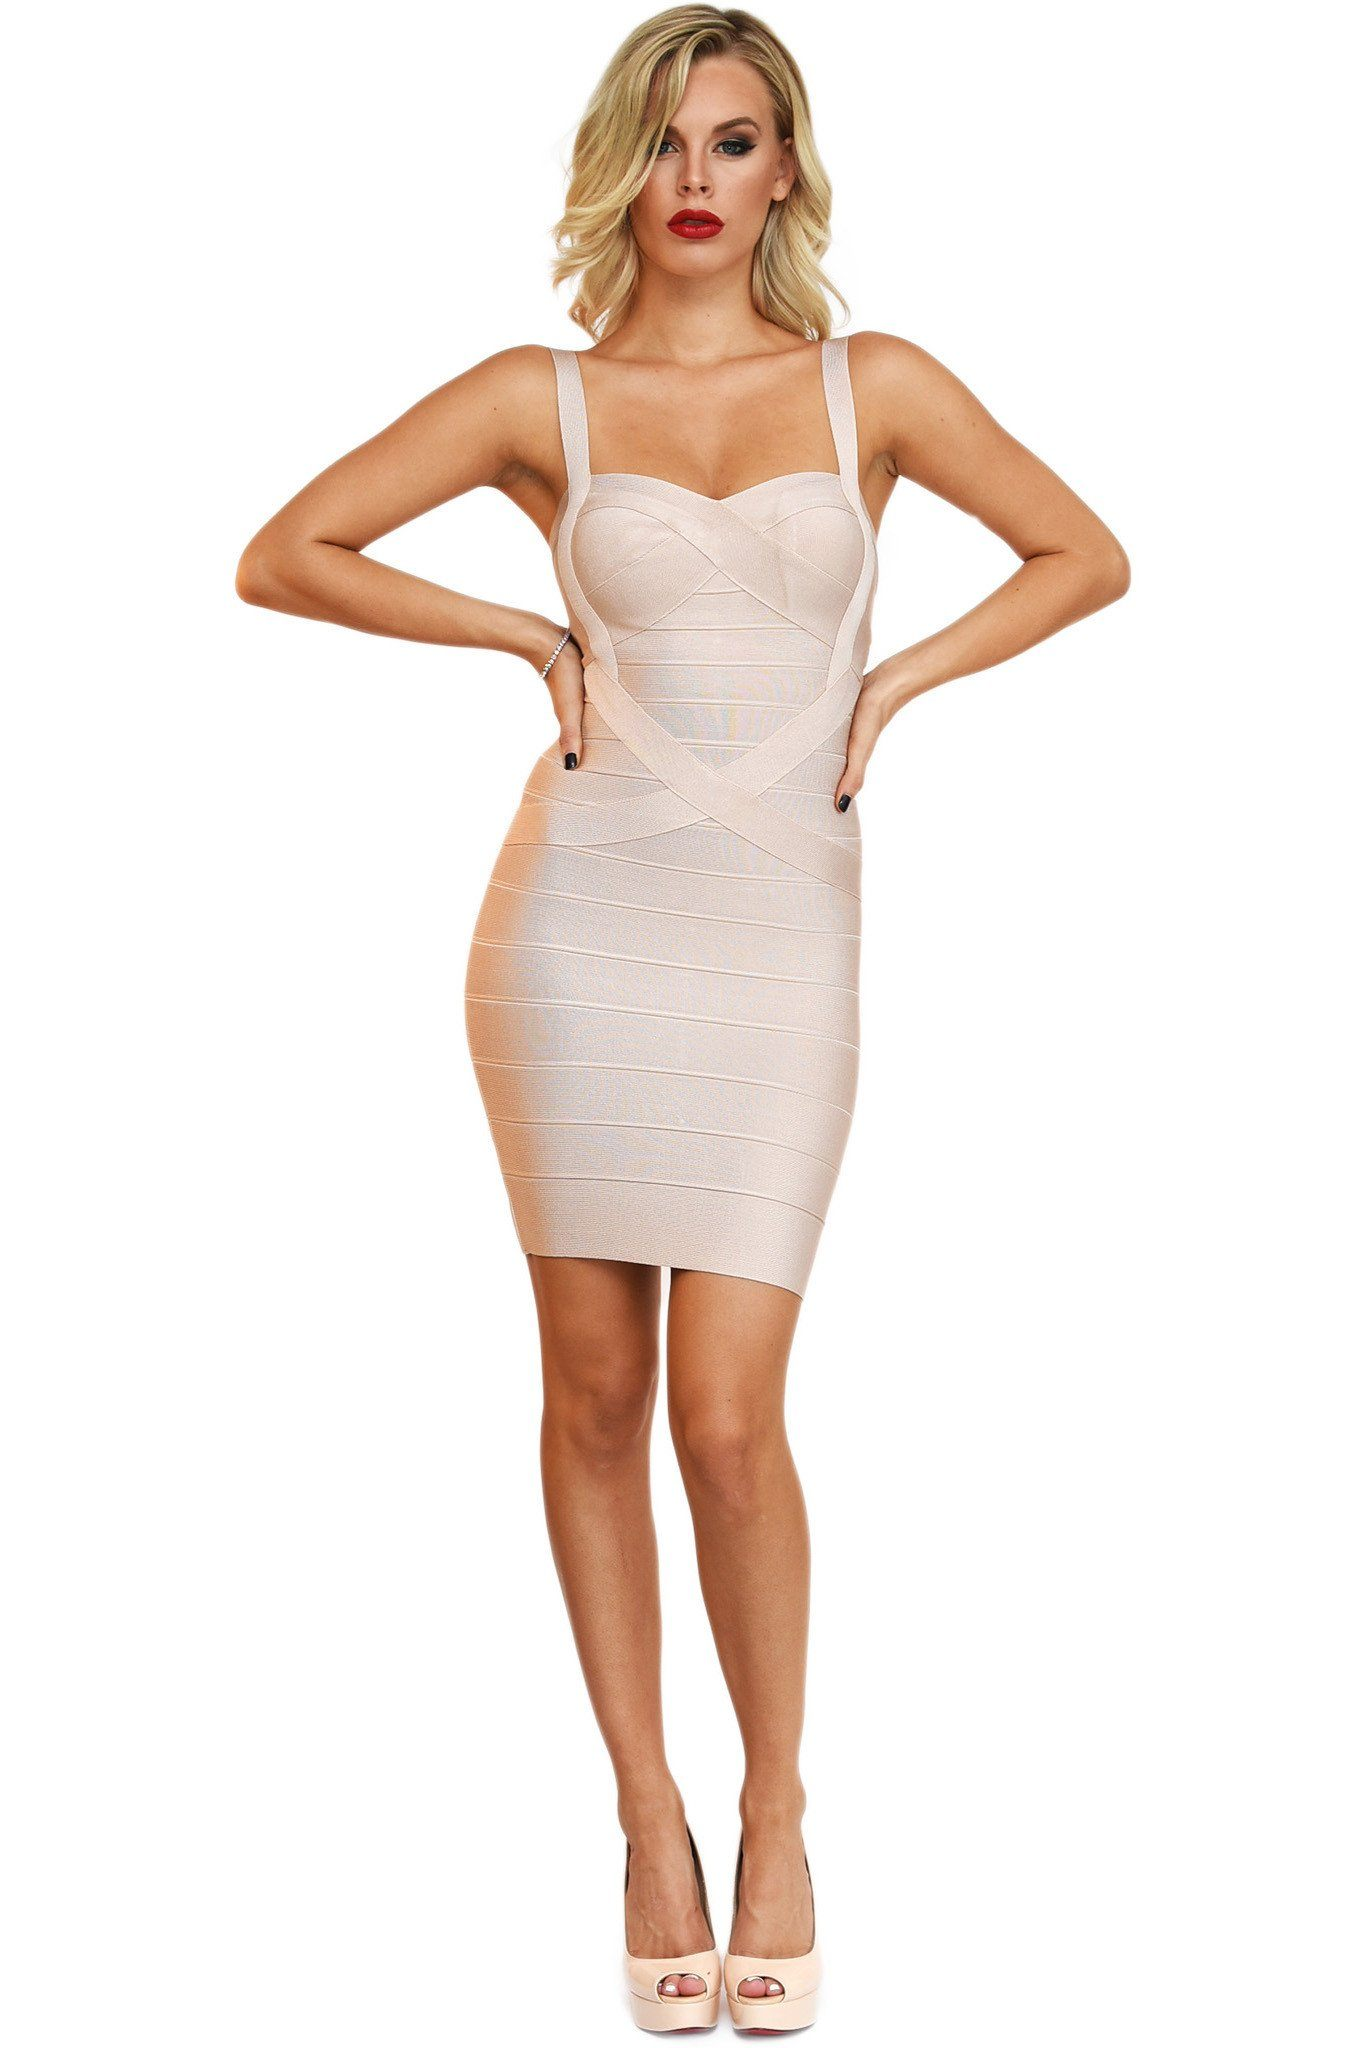 Front of nude colored mini bodycon bandage dress with shoulder straps and sweetheart neckline